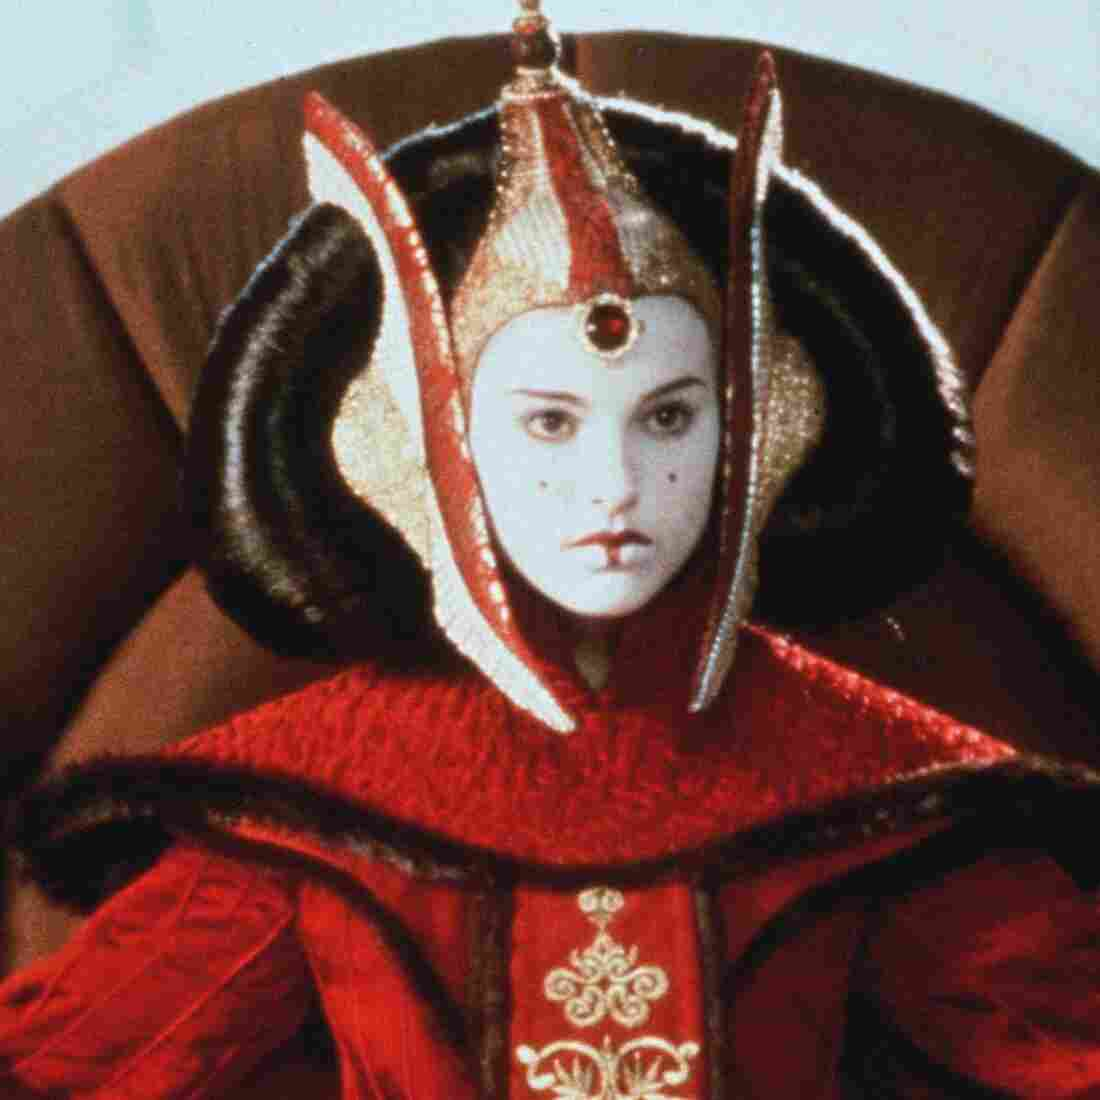 Natalie Portman as Queen Amidala in Star Wars Episode I: The Phantom Menace in 1999.